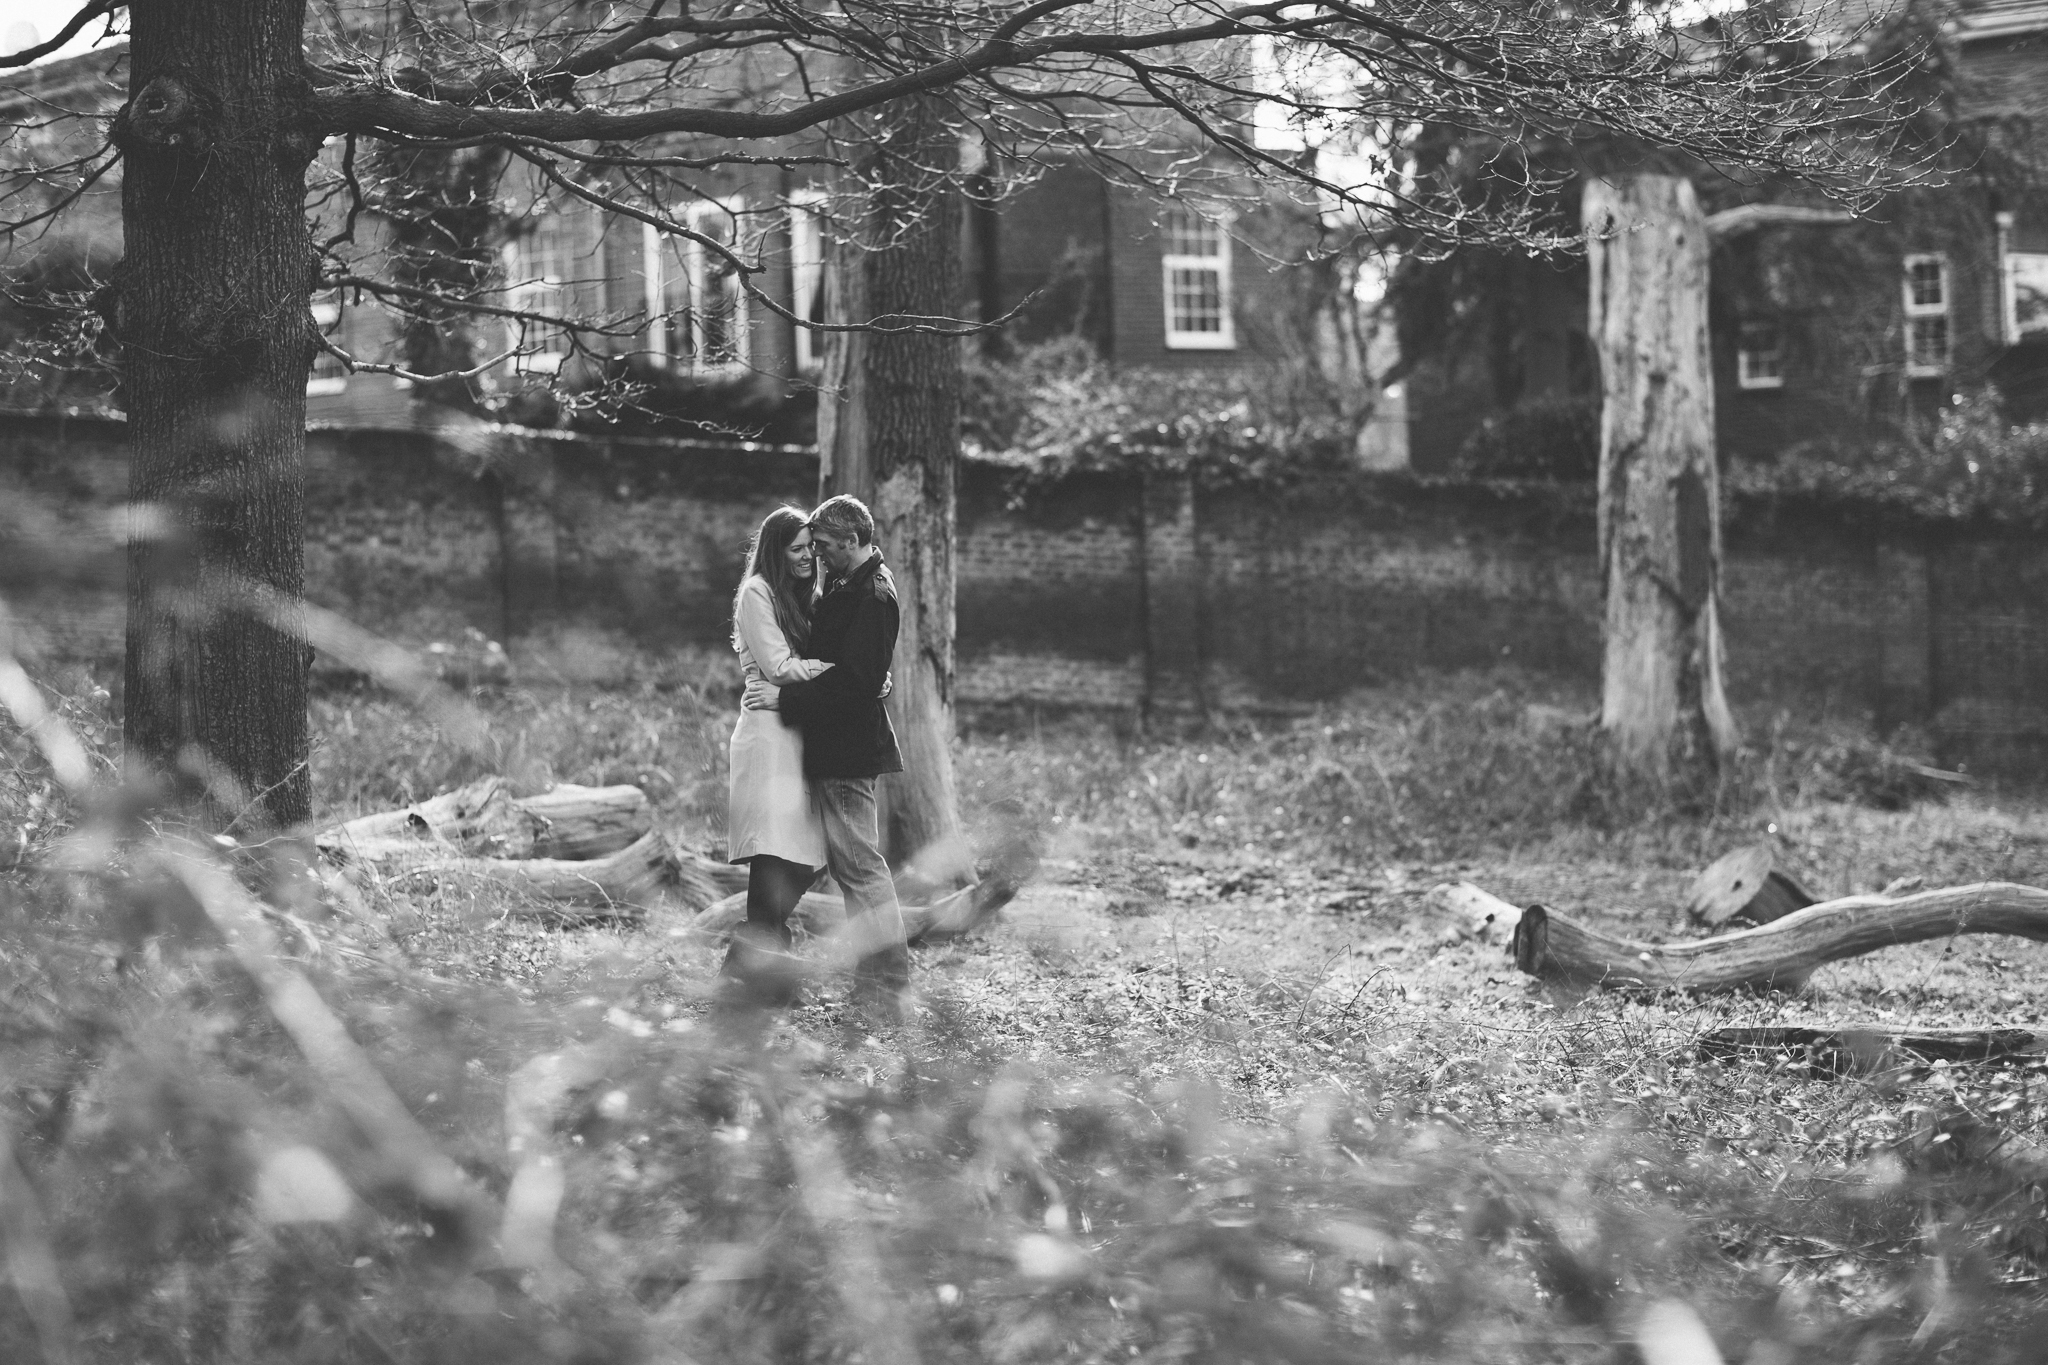 Richmond Park Engagement Photography Wedding Photographer Surrey (39 of 54).jpg